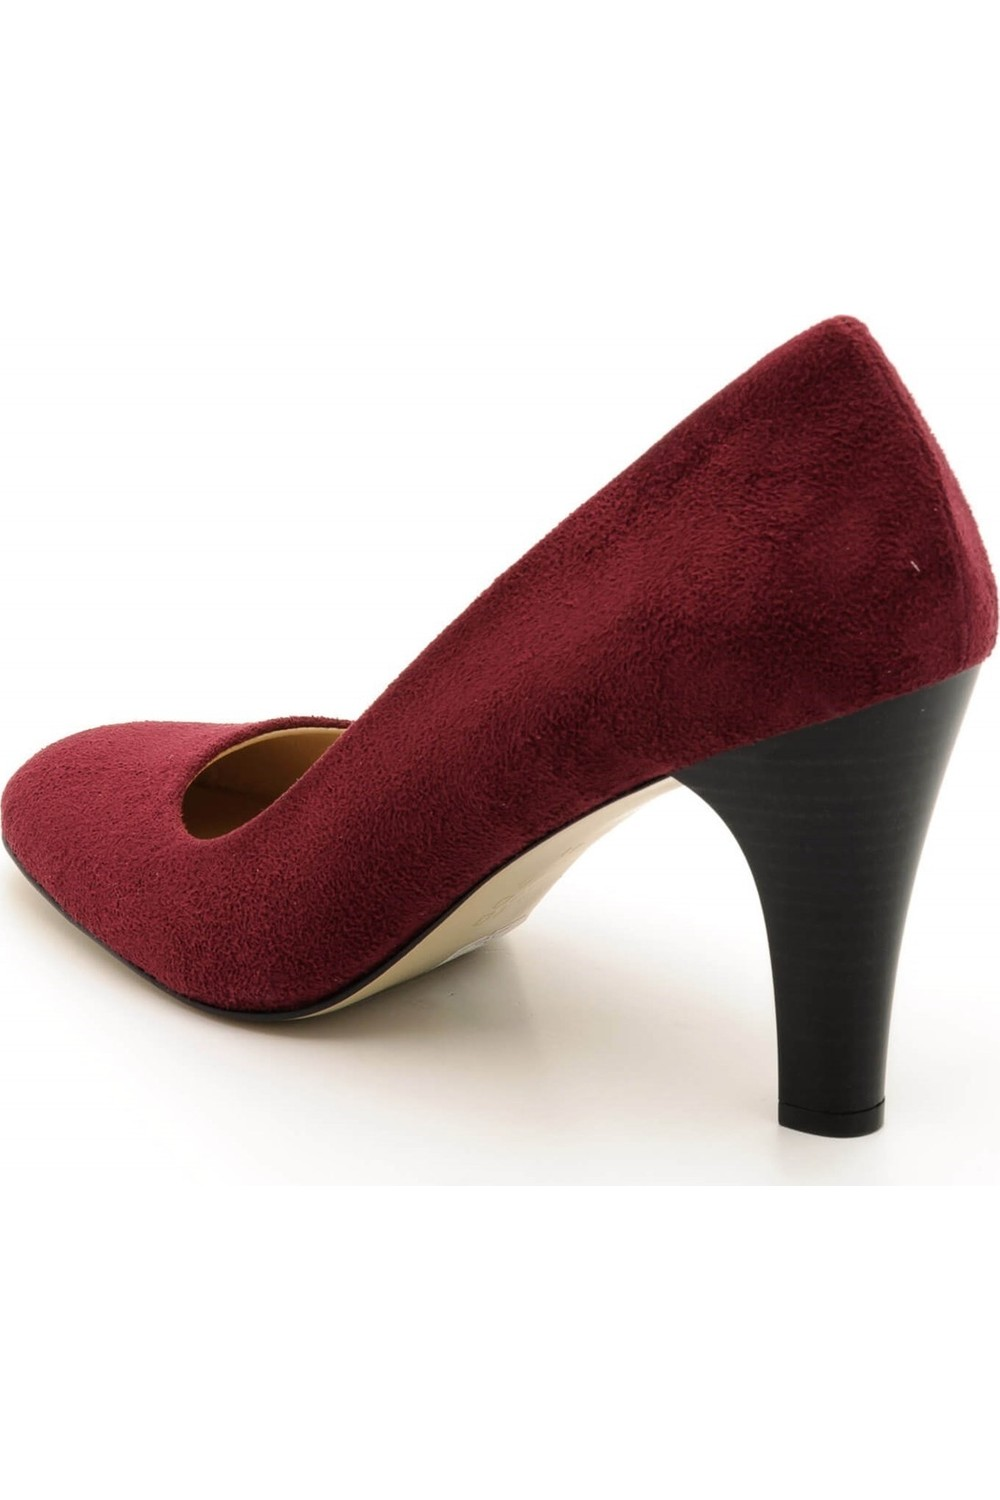 Costo Shoes Suede High Heels Women's Shoes 1923